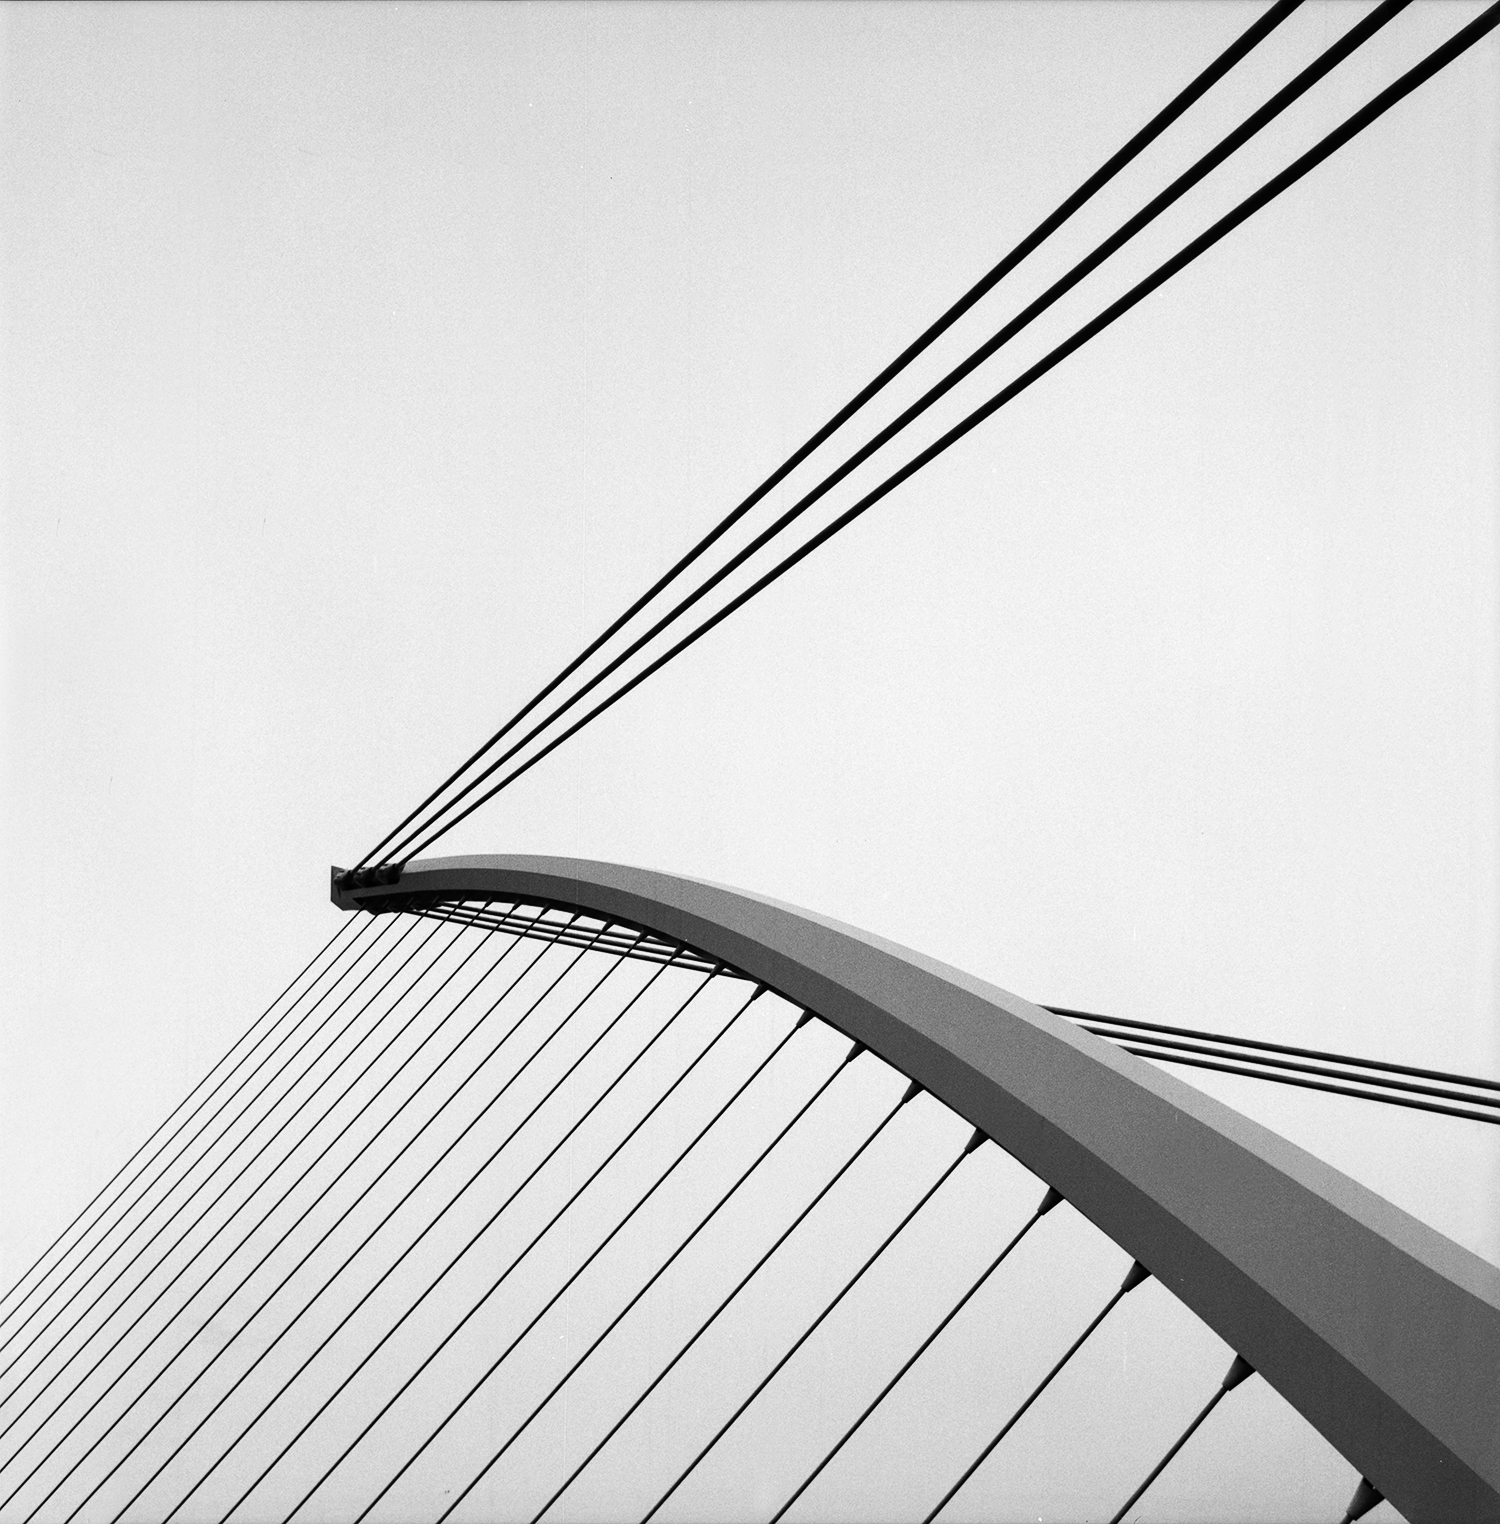 Samuel Beckett's Bridge, Dublin by David Hatters